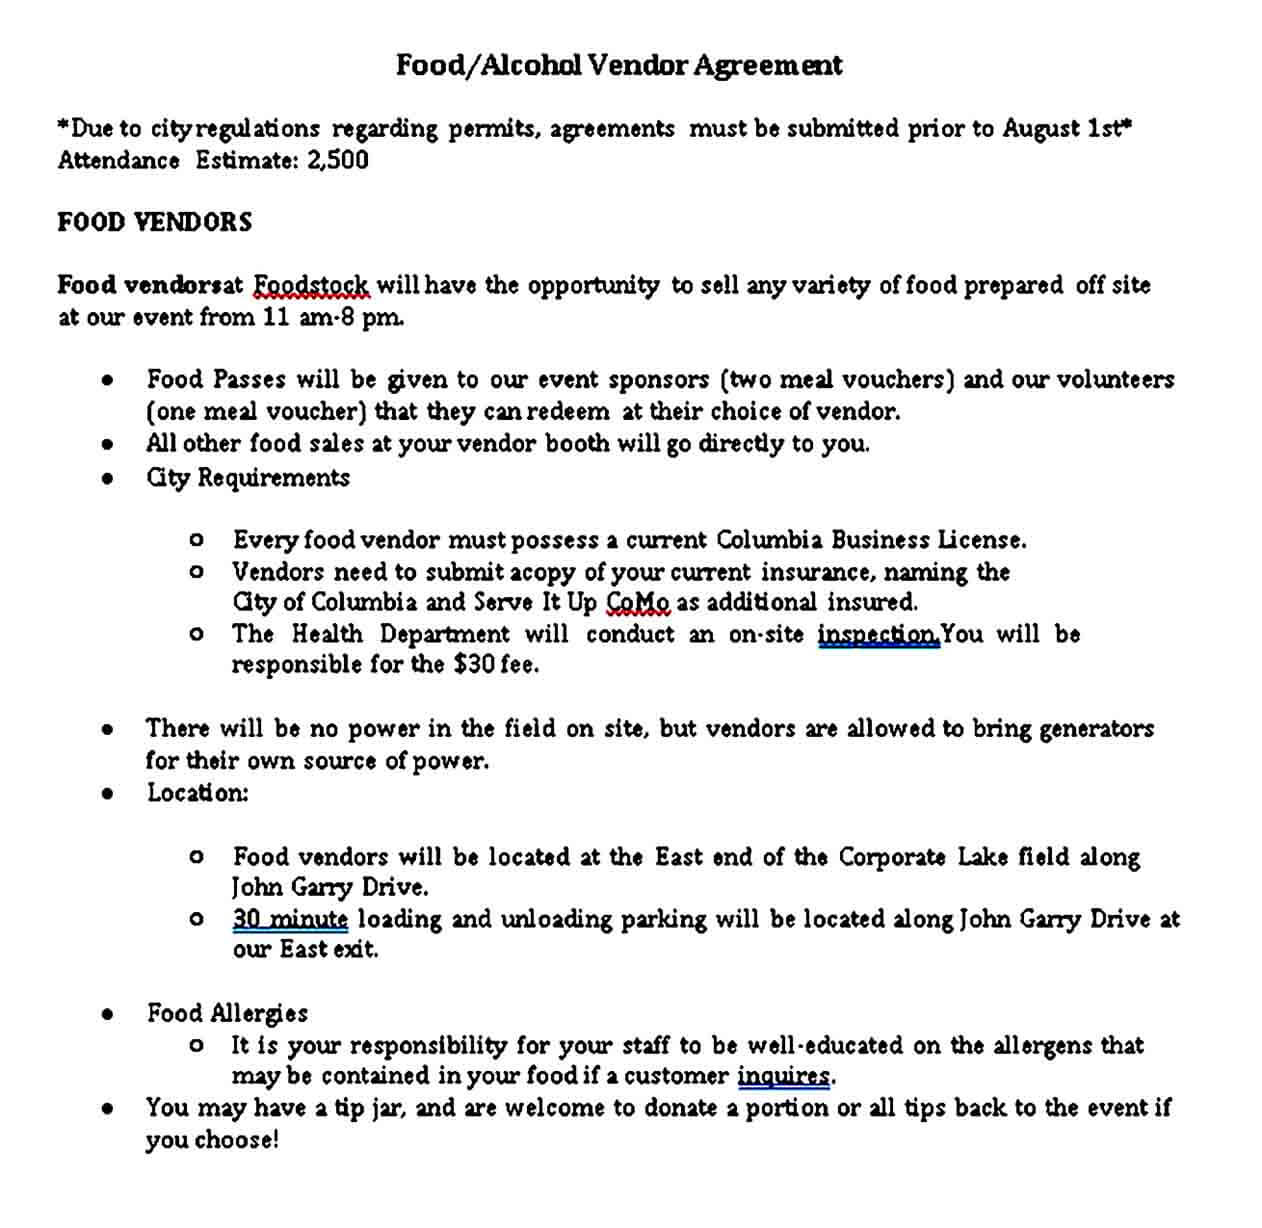 Restaurant Food and Alcohol Vendor Agreement